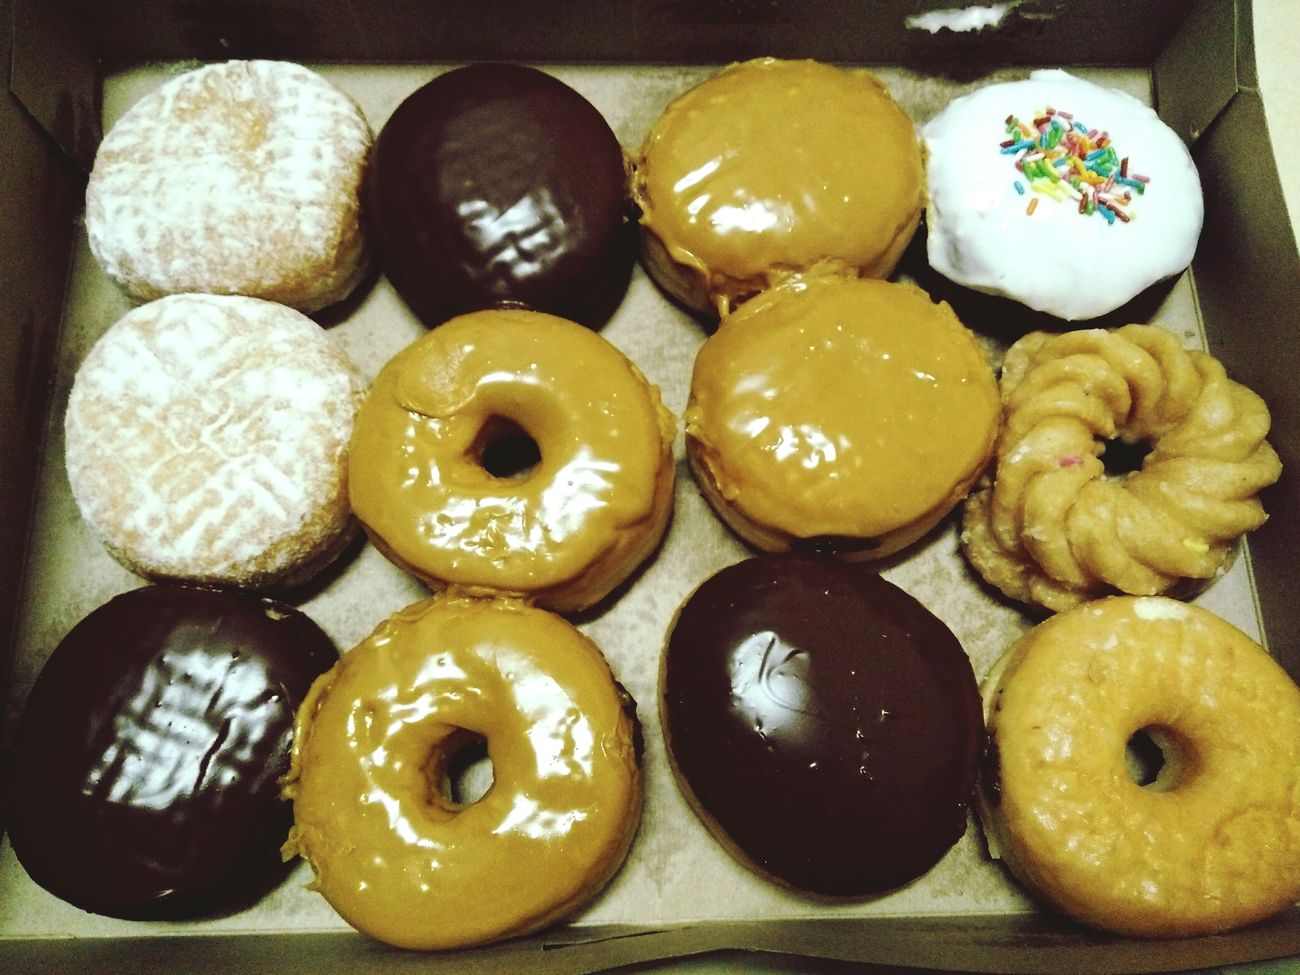 Food And Drink Dessert Close-up Arrangement Donuts🍩 Food Timhortons Food And Drink Multi Colored Sweet Food Donut